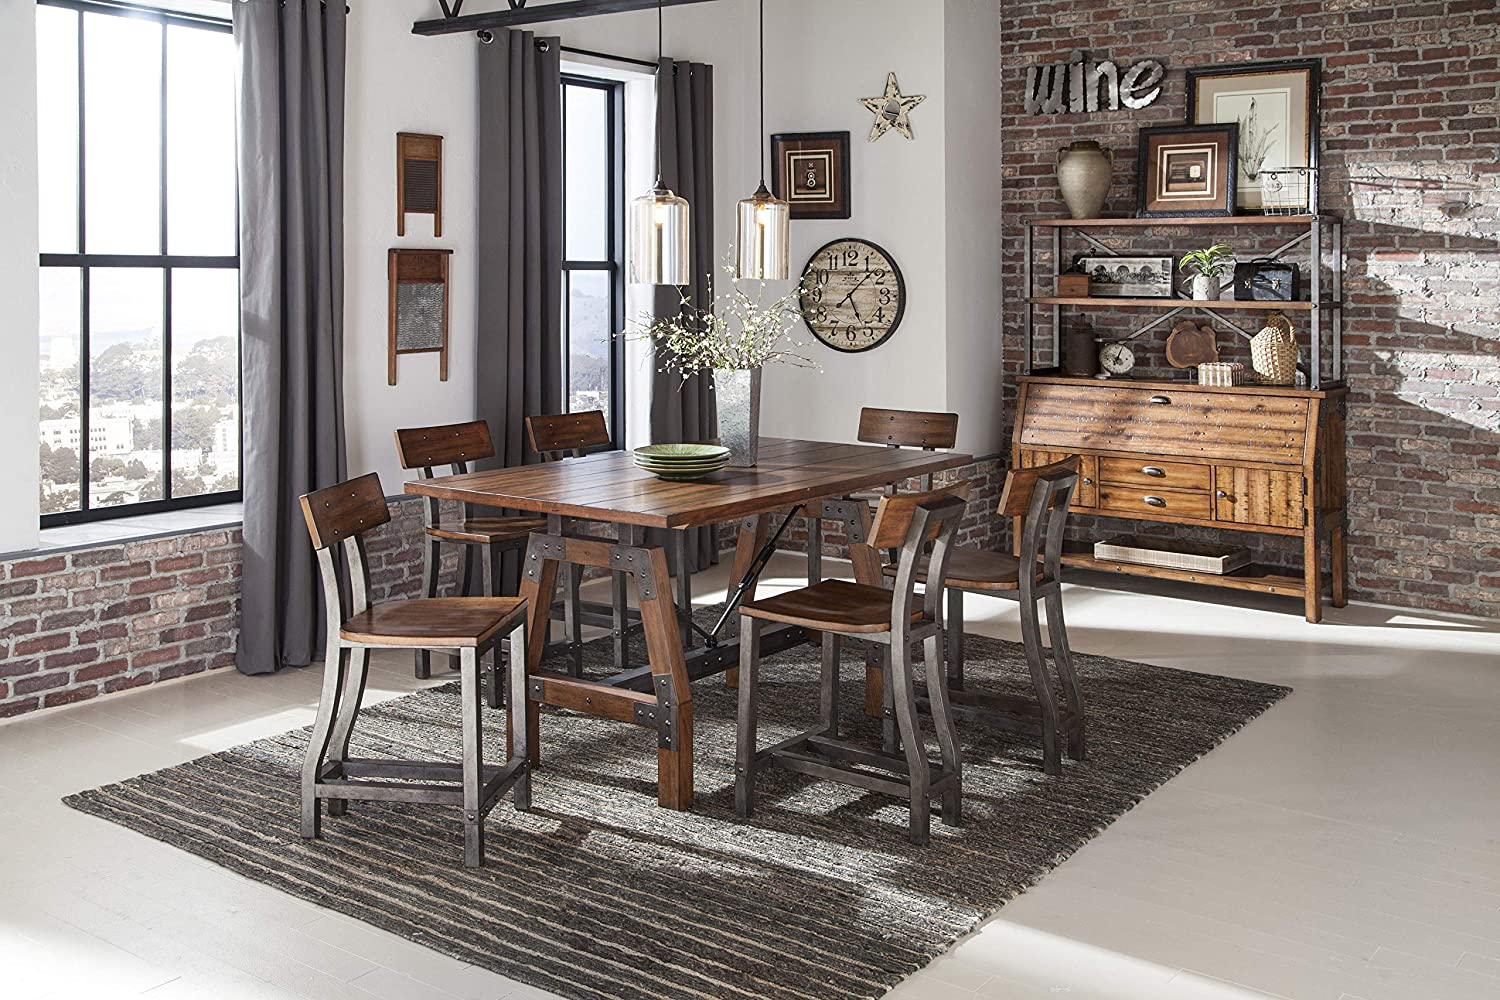 farmhouse-counter-height-dining-table-64-inch-tabletop-acacia-veneers-metal-details-industrial-rustic-furniture-for-the-dining-room